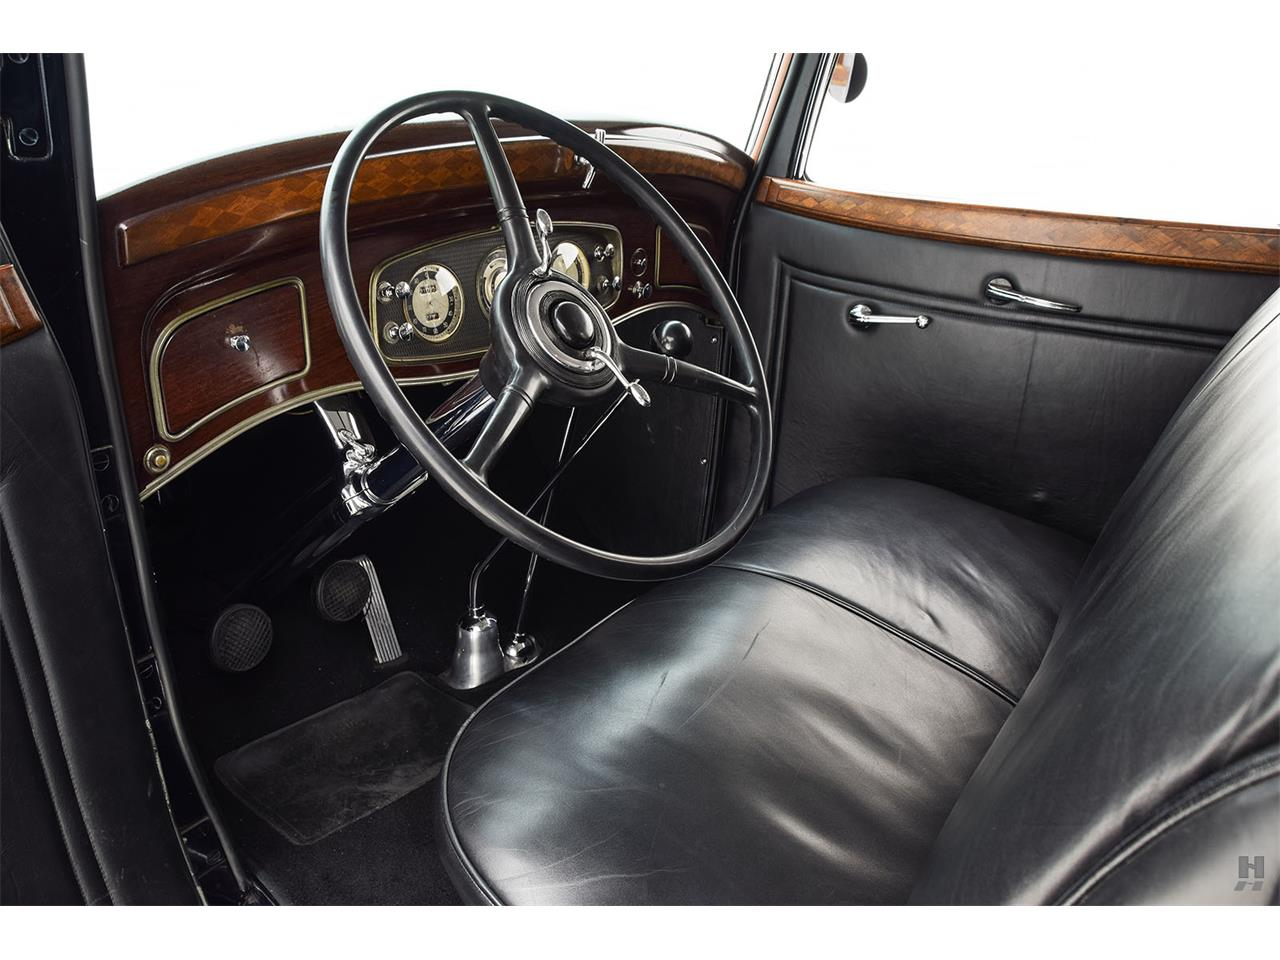 Large Picture of 1934 Lincoln Antique Offered by Hyman Ltd. Classic Cars - LBT2